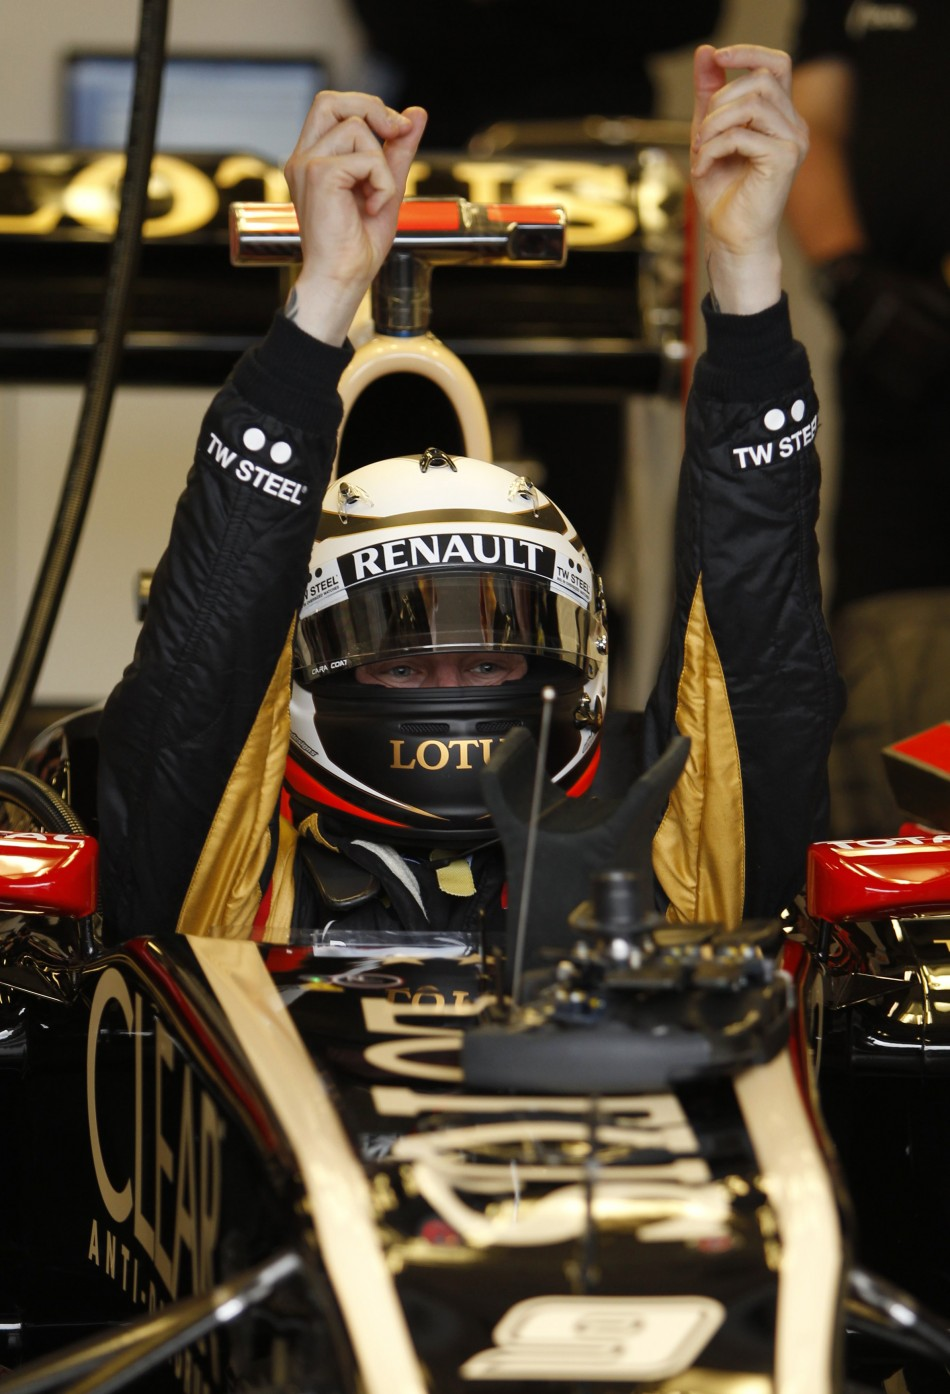 Lotus F1 Formula One driver Raikkonen gets into his car during the first practice session of the Australian F1 Grand Prix at the Albert Park circuit in Melbourne